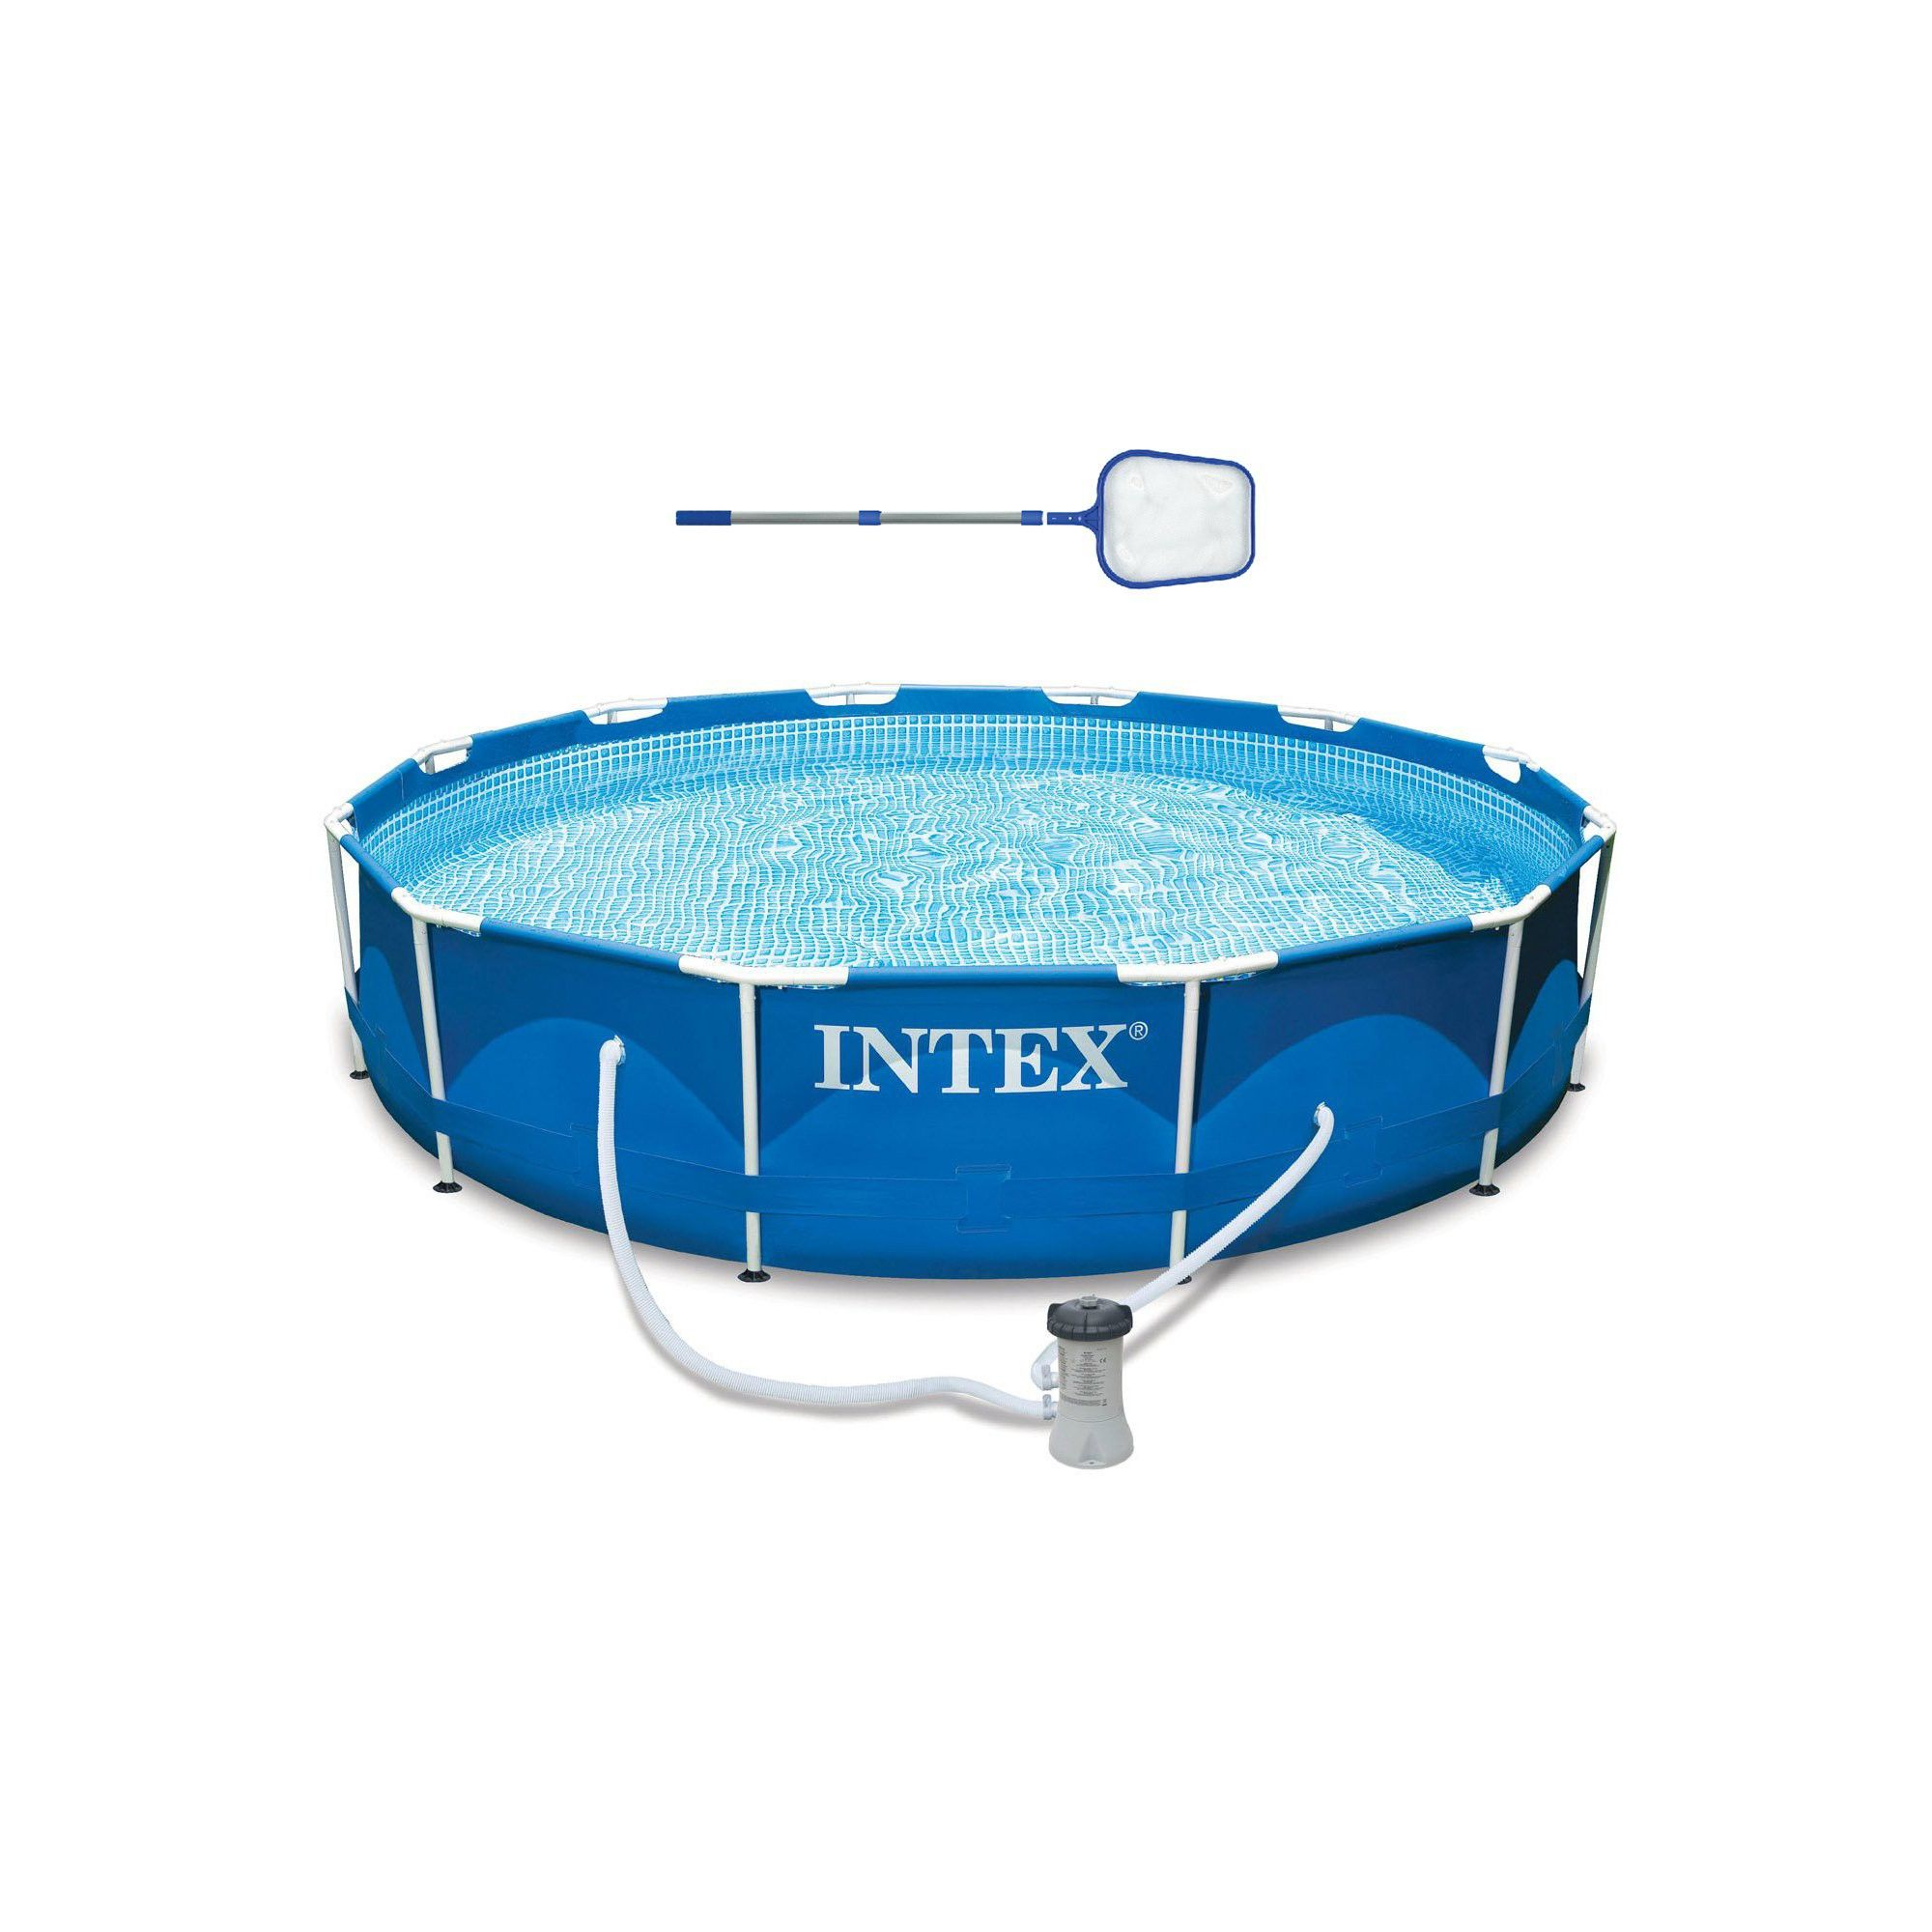 Intex 12 X 30 Metal Frame Above Ground Swimming Pool Filter Skimmer Above Ground Swimming Pools Swimming Pools Small Swimming Pools